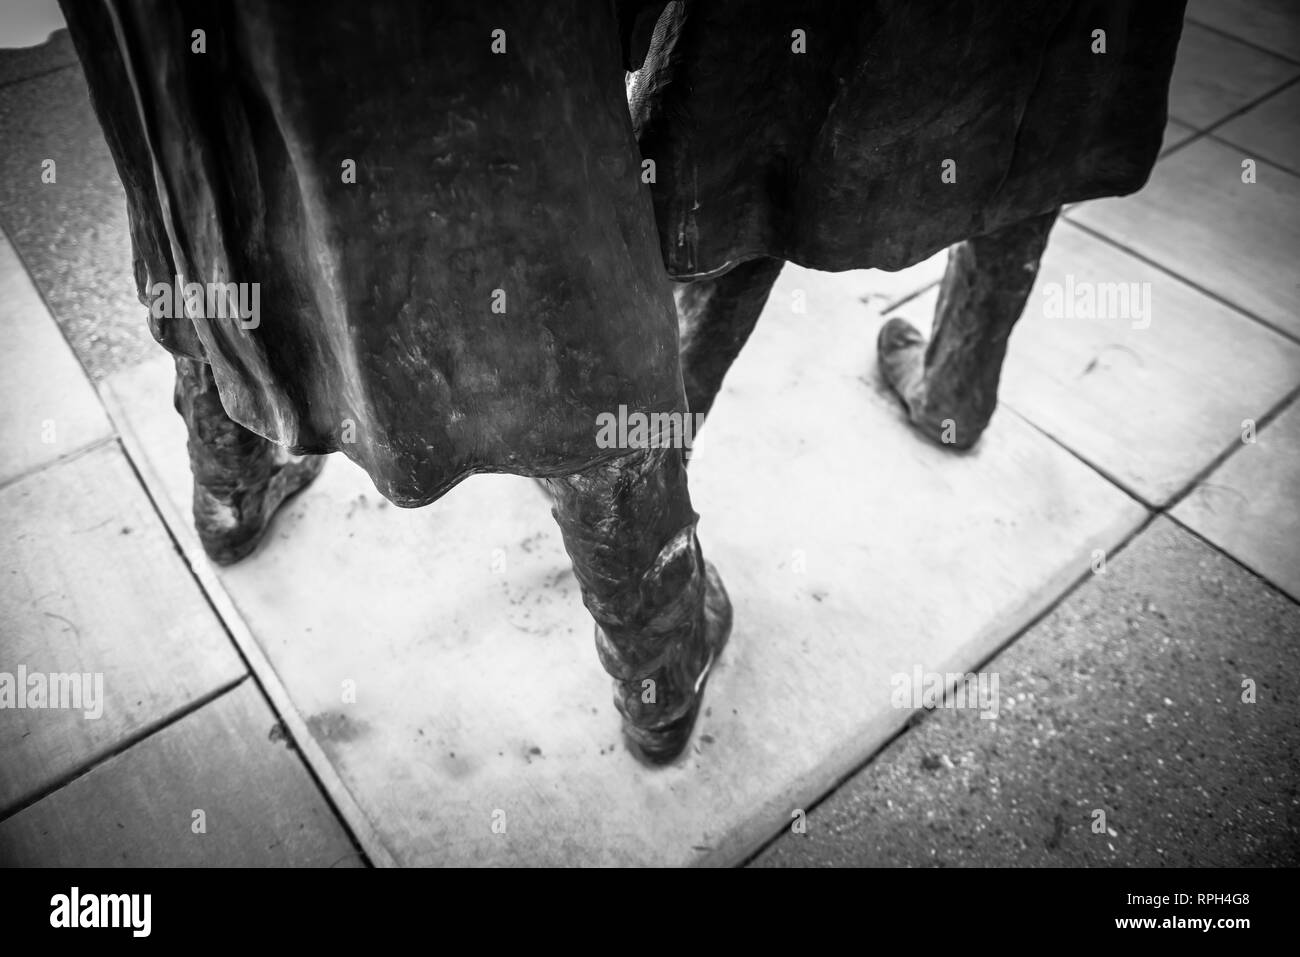 A dramatic black & white view of The lower half of two bronze statues of Doc Holiday and Wyatt Earp wearing their cowboy duster coats at the Southern  - Stock Image